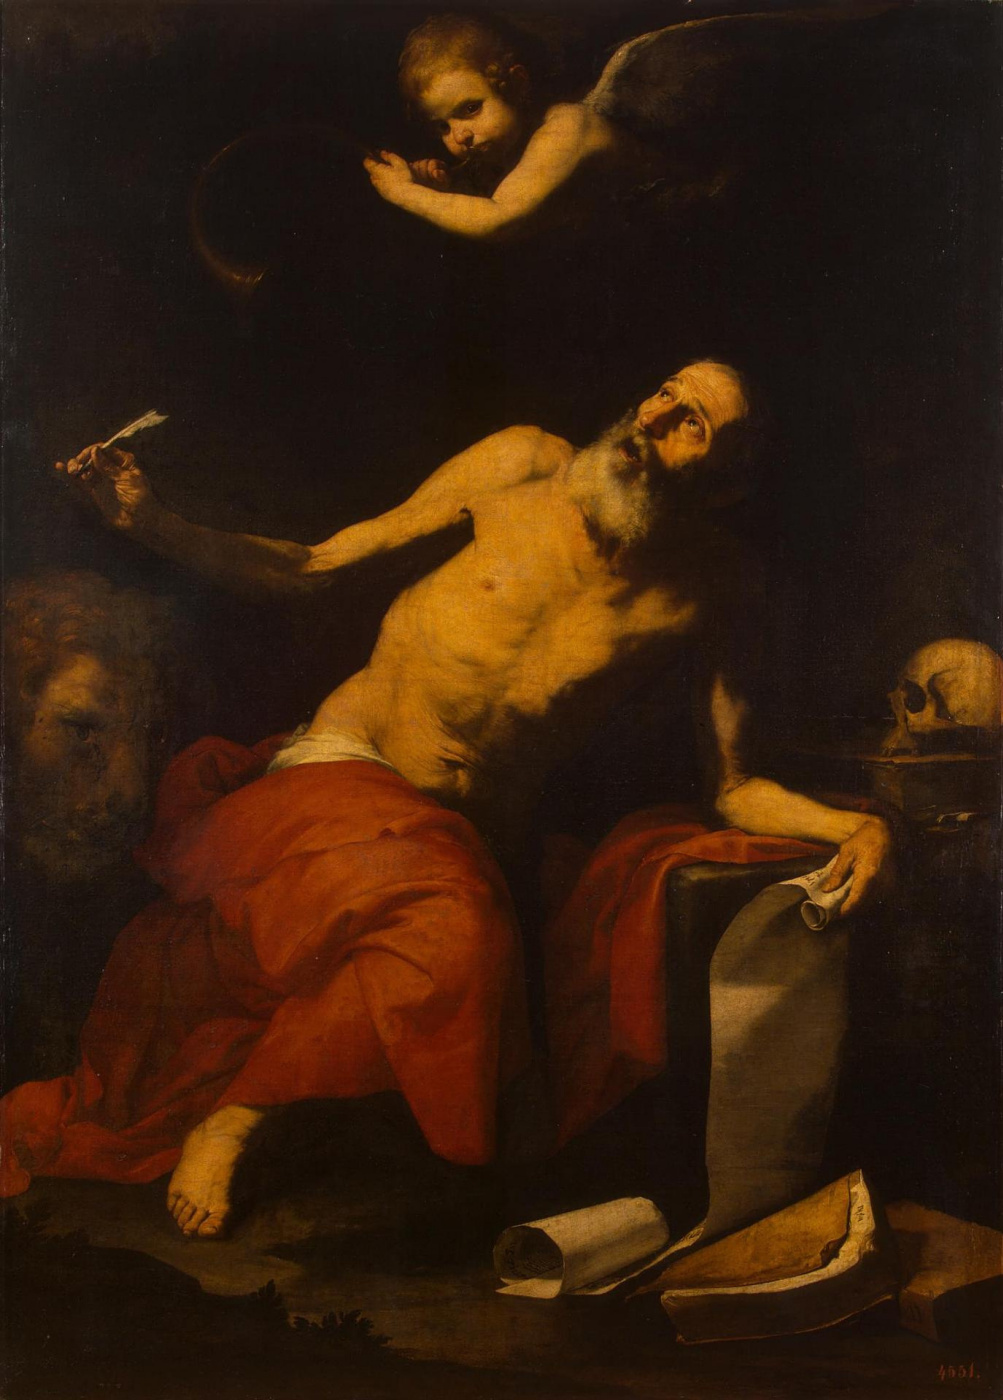 Jose de Ribera. Saint Jerome and the angel (St. Jerome hears the sound of the heavenly trumpet)